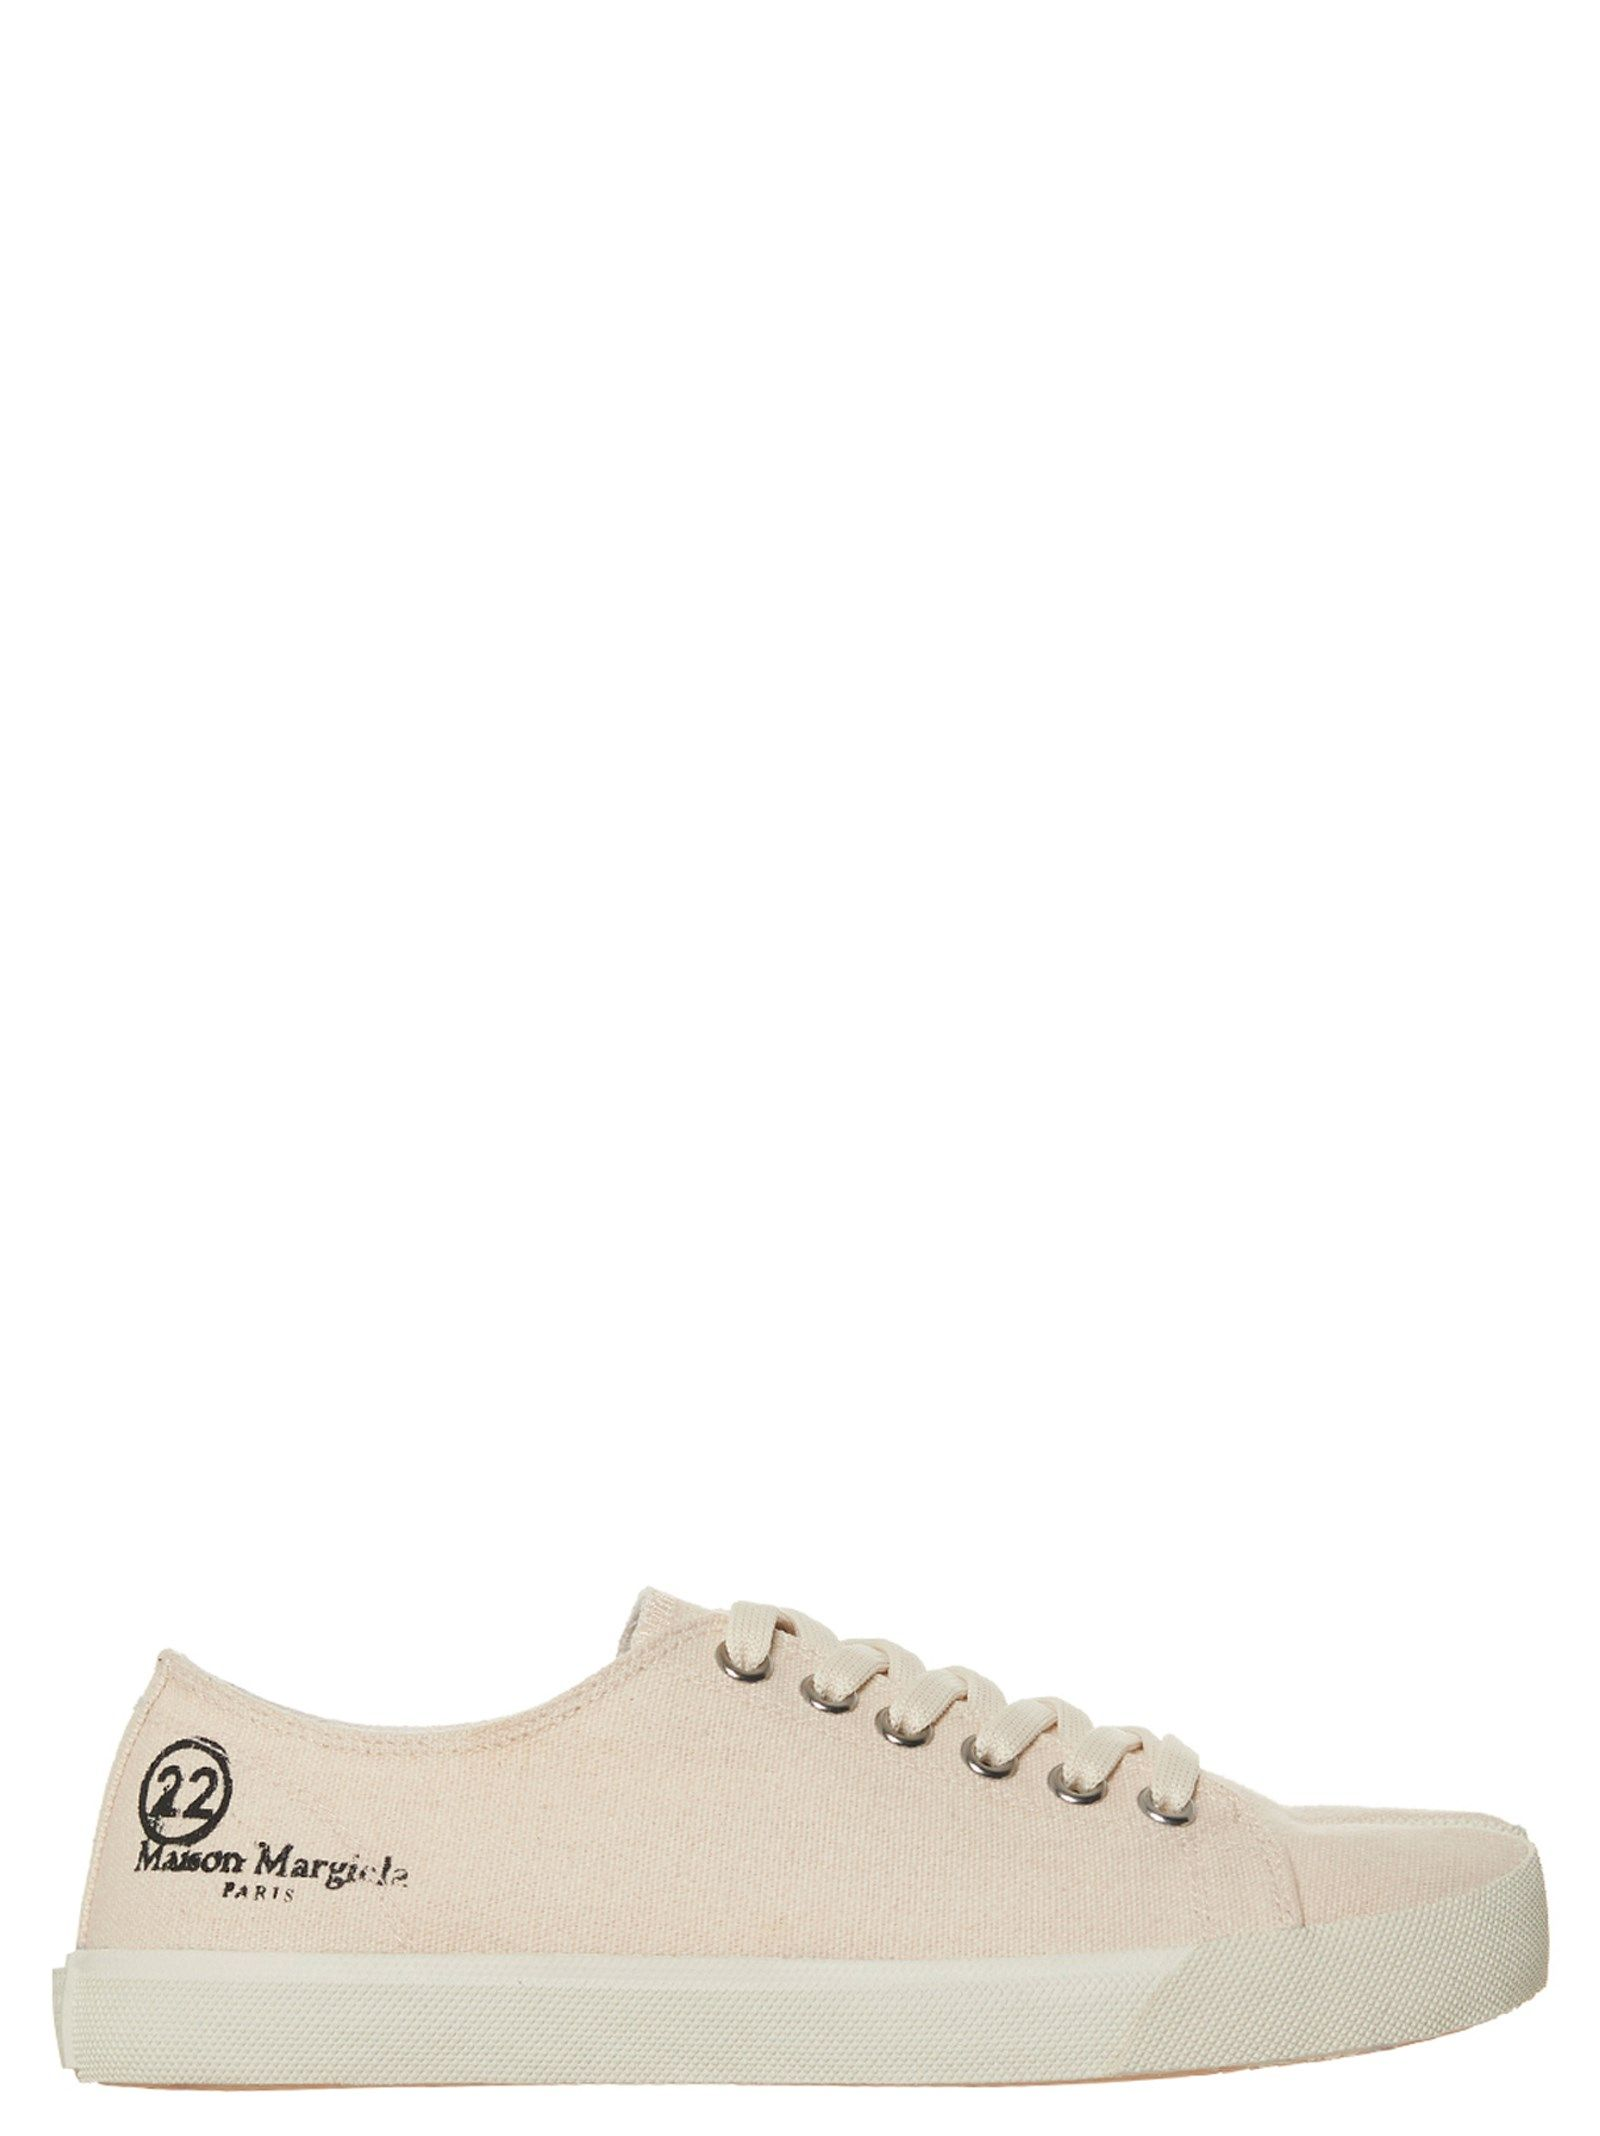 Maison Margiela MAISON MARGIELA WOMEN'S S58WS0110P4044T8041 WHITE OTHER MATERIALS SNEAKERS